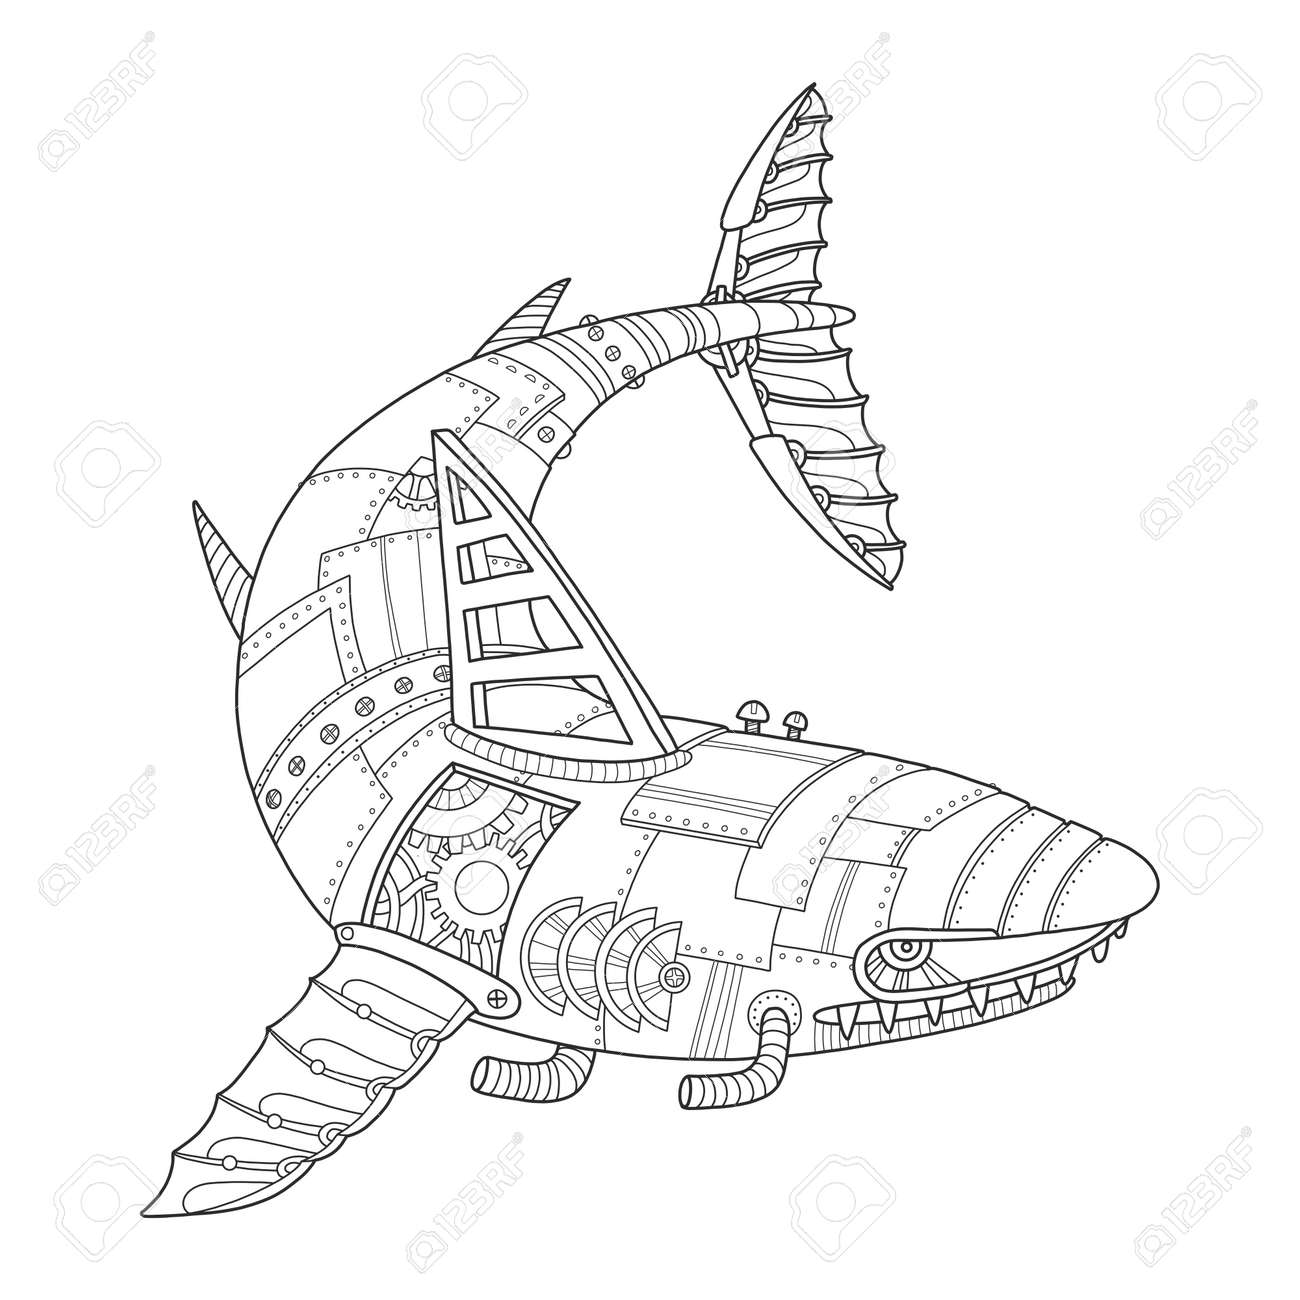 Steam Punk Style Shark Coloring Book Vector Royalty Free Cliparts ...